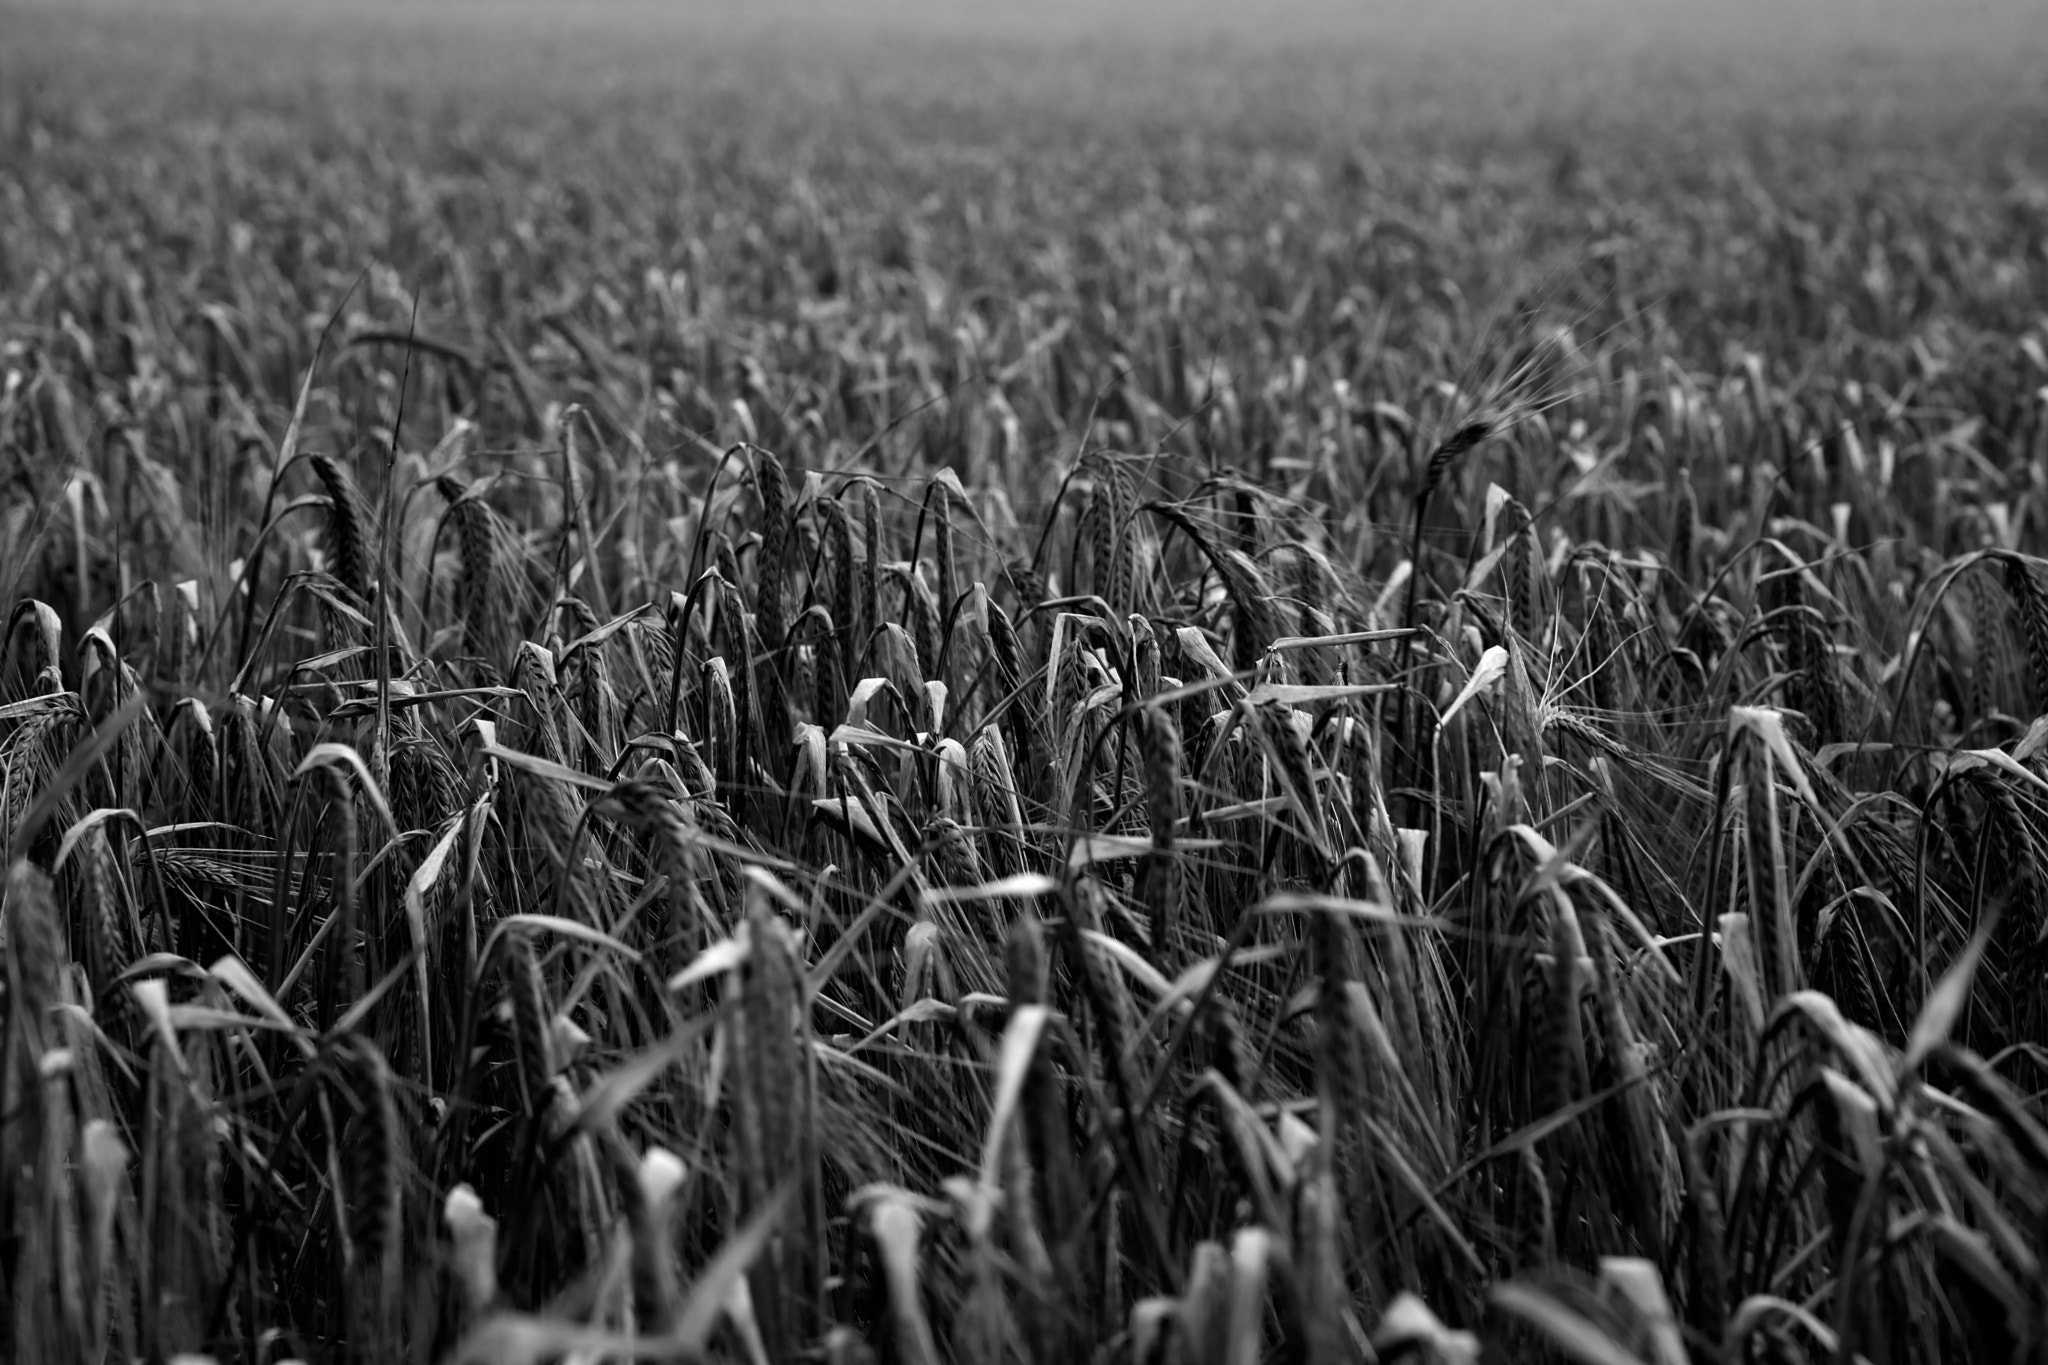 Photograph Corn field by Steven Parker on 500px